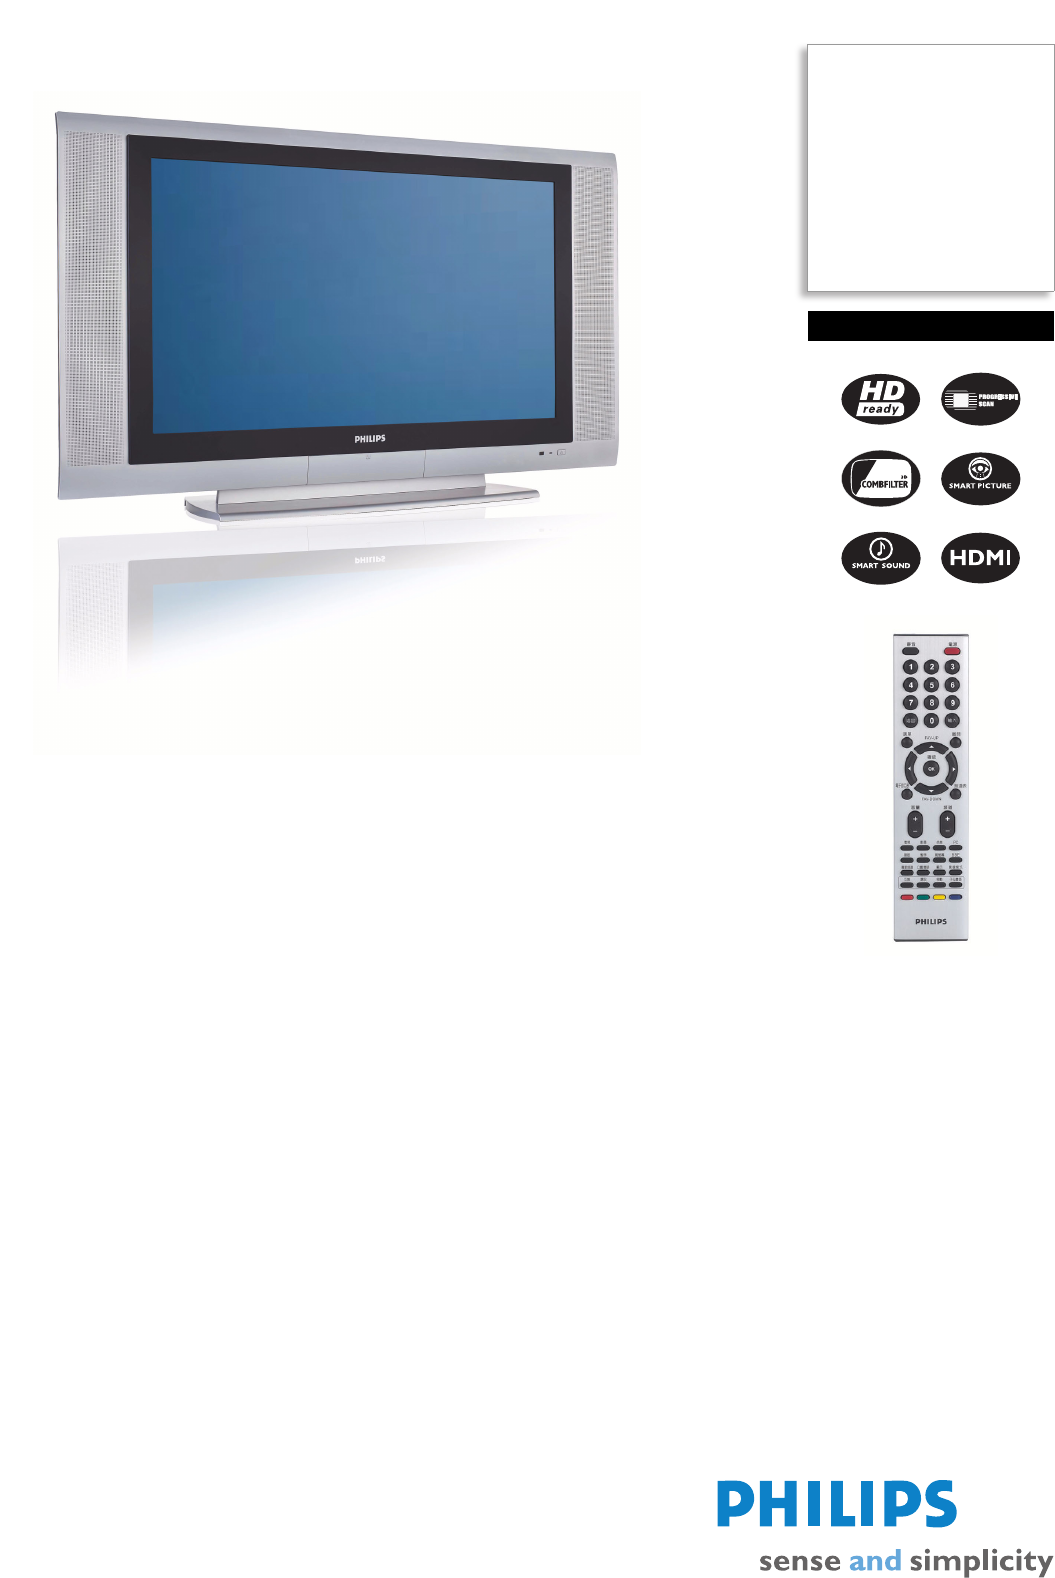 philips flat panel television 37pf1600t user guide manualsonline com rh tv manualsonline com Philips Instruction Manuals Philips User Manual